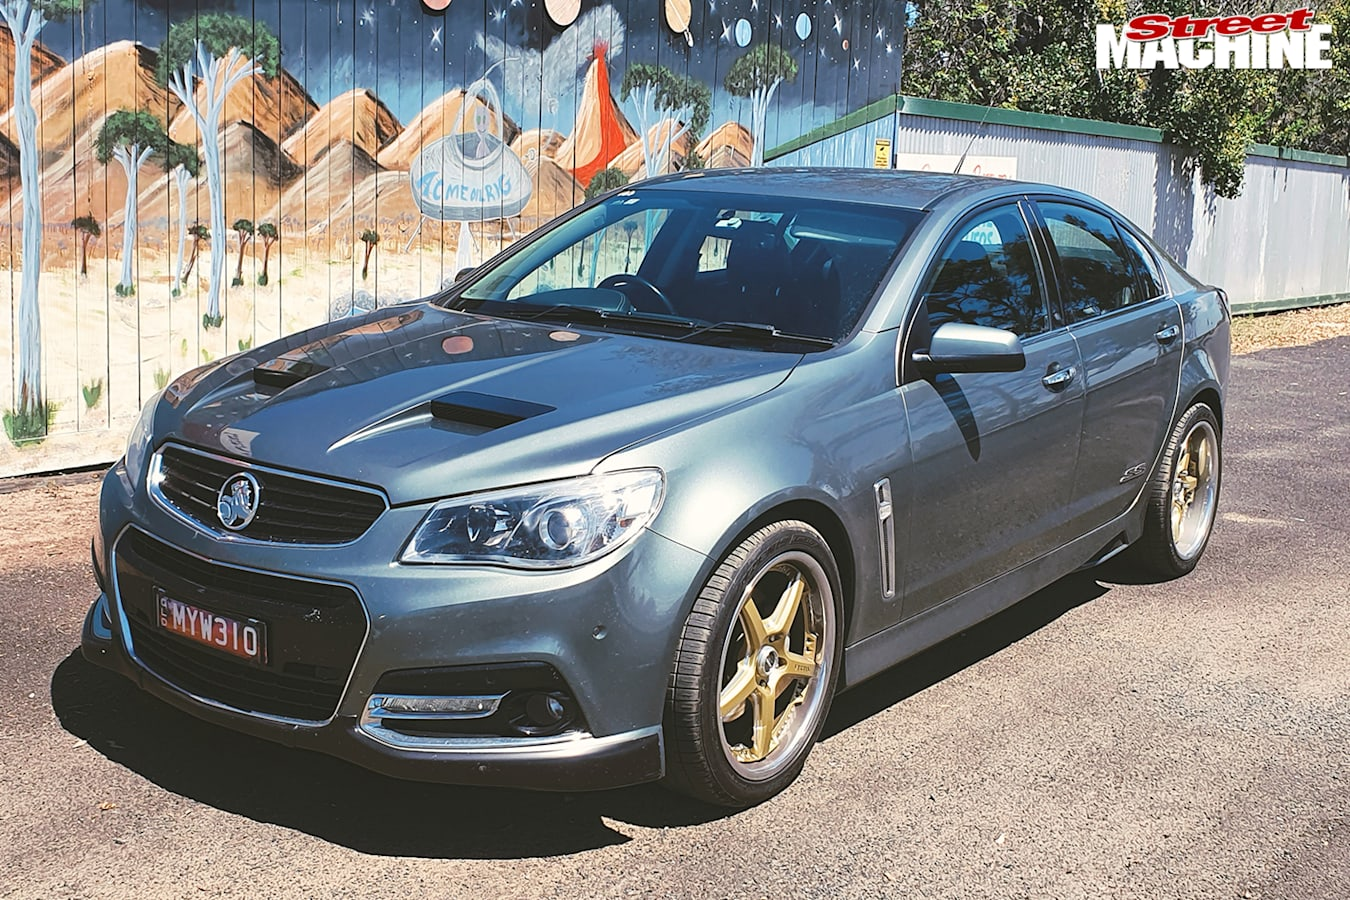 Street Machine Features Holden Vf Commodore Front